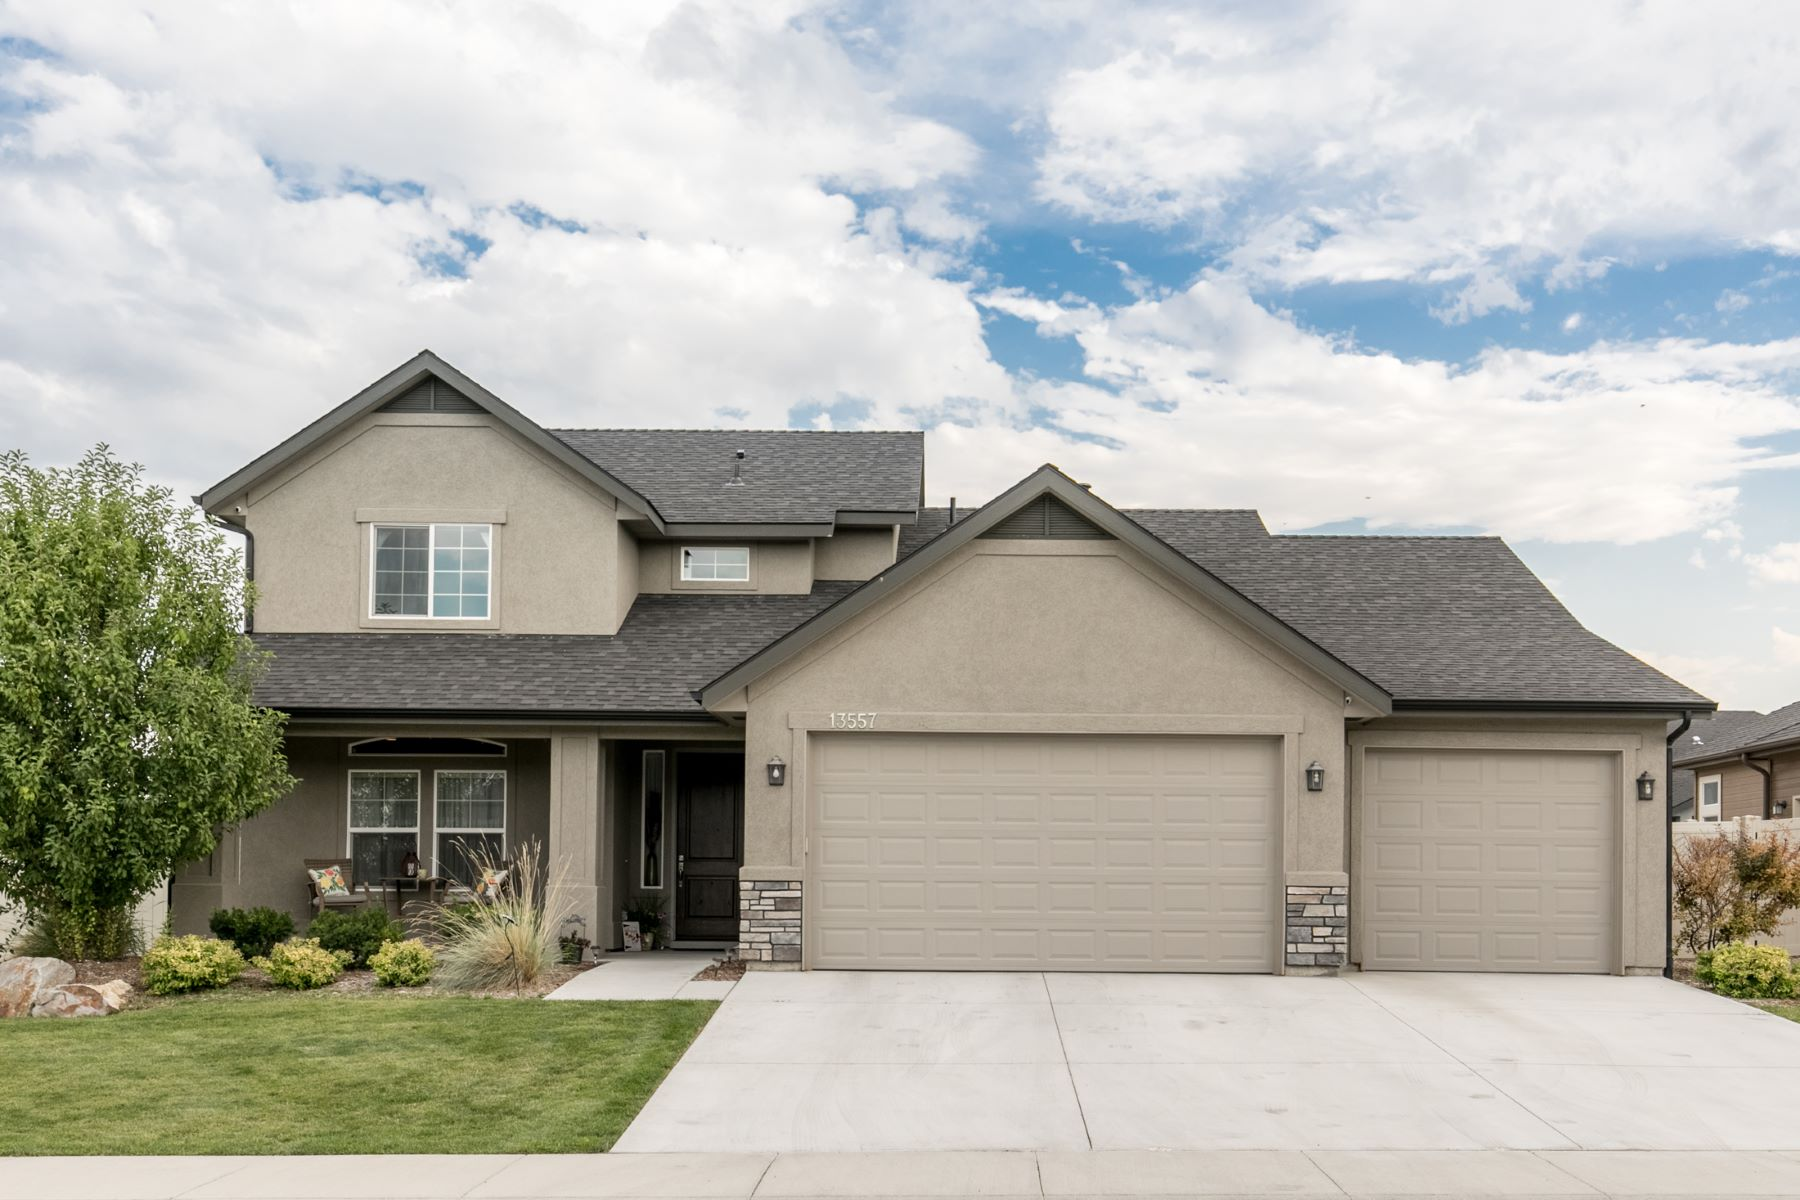 Single Family Homes for Active at 13557 Signorello St, Caldwell 13557 Signorello St Caldwell, Idaho 83607 United States